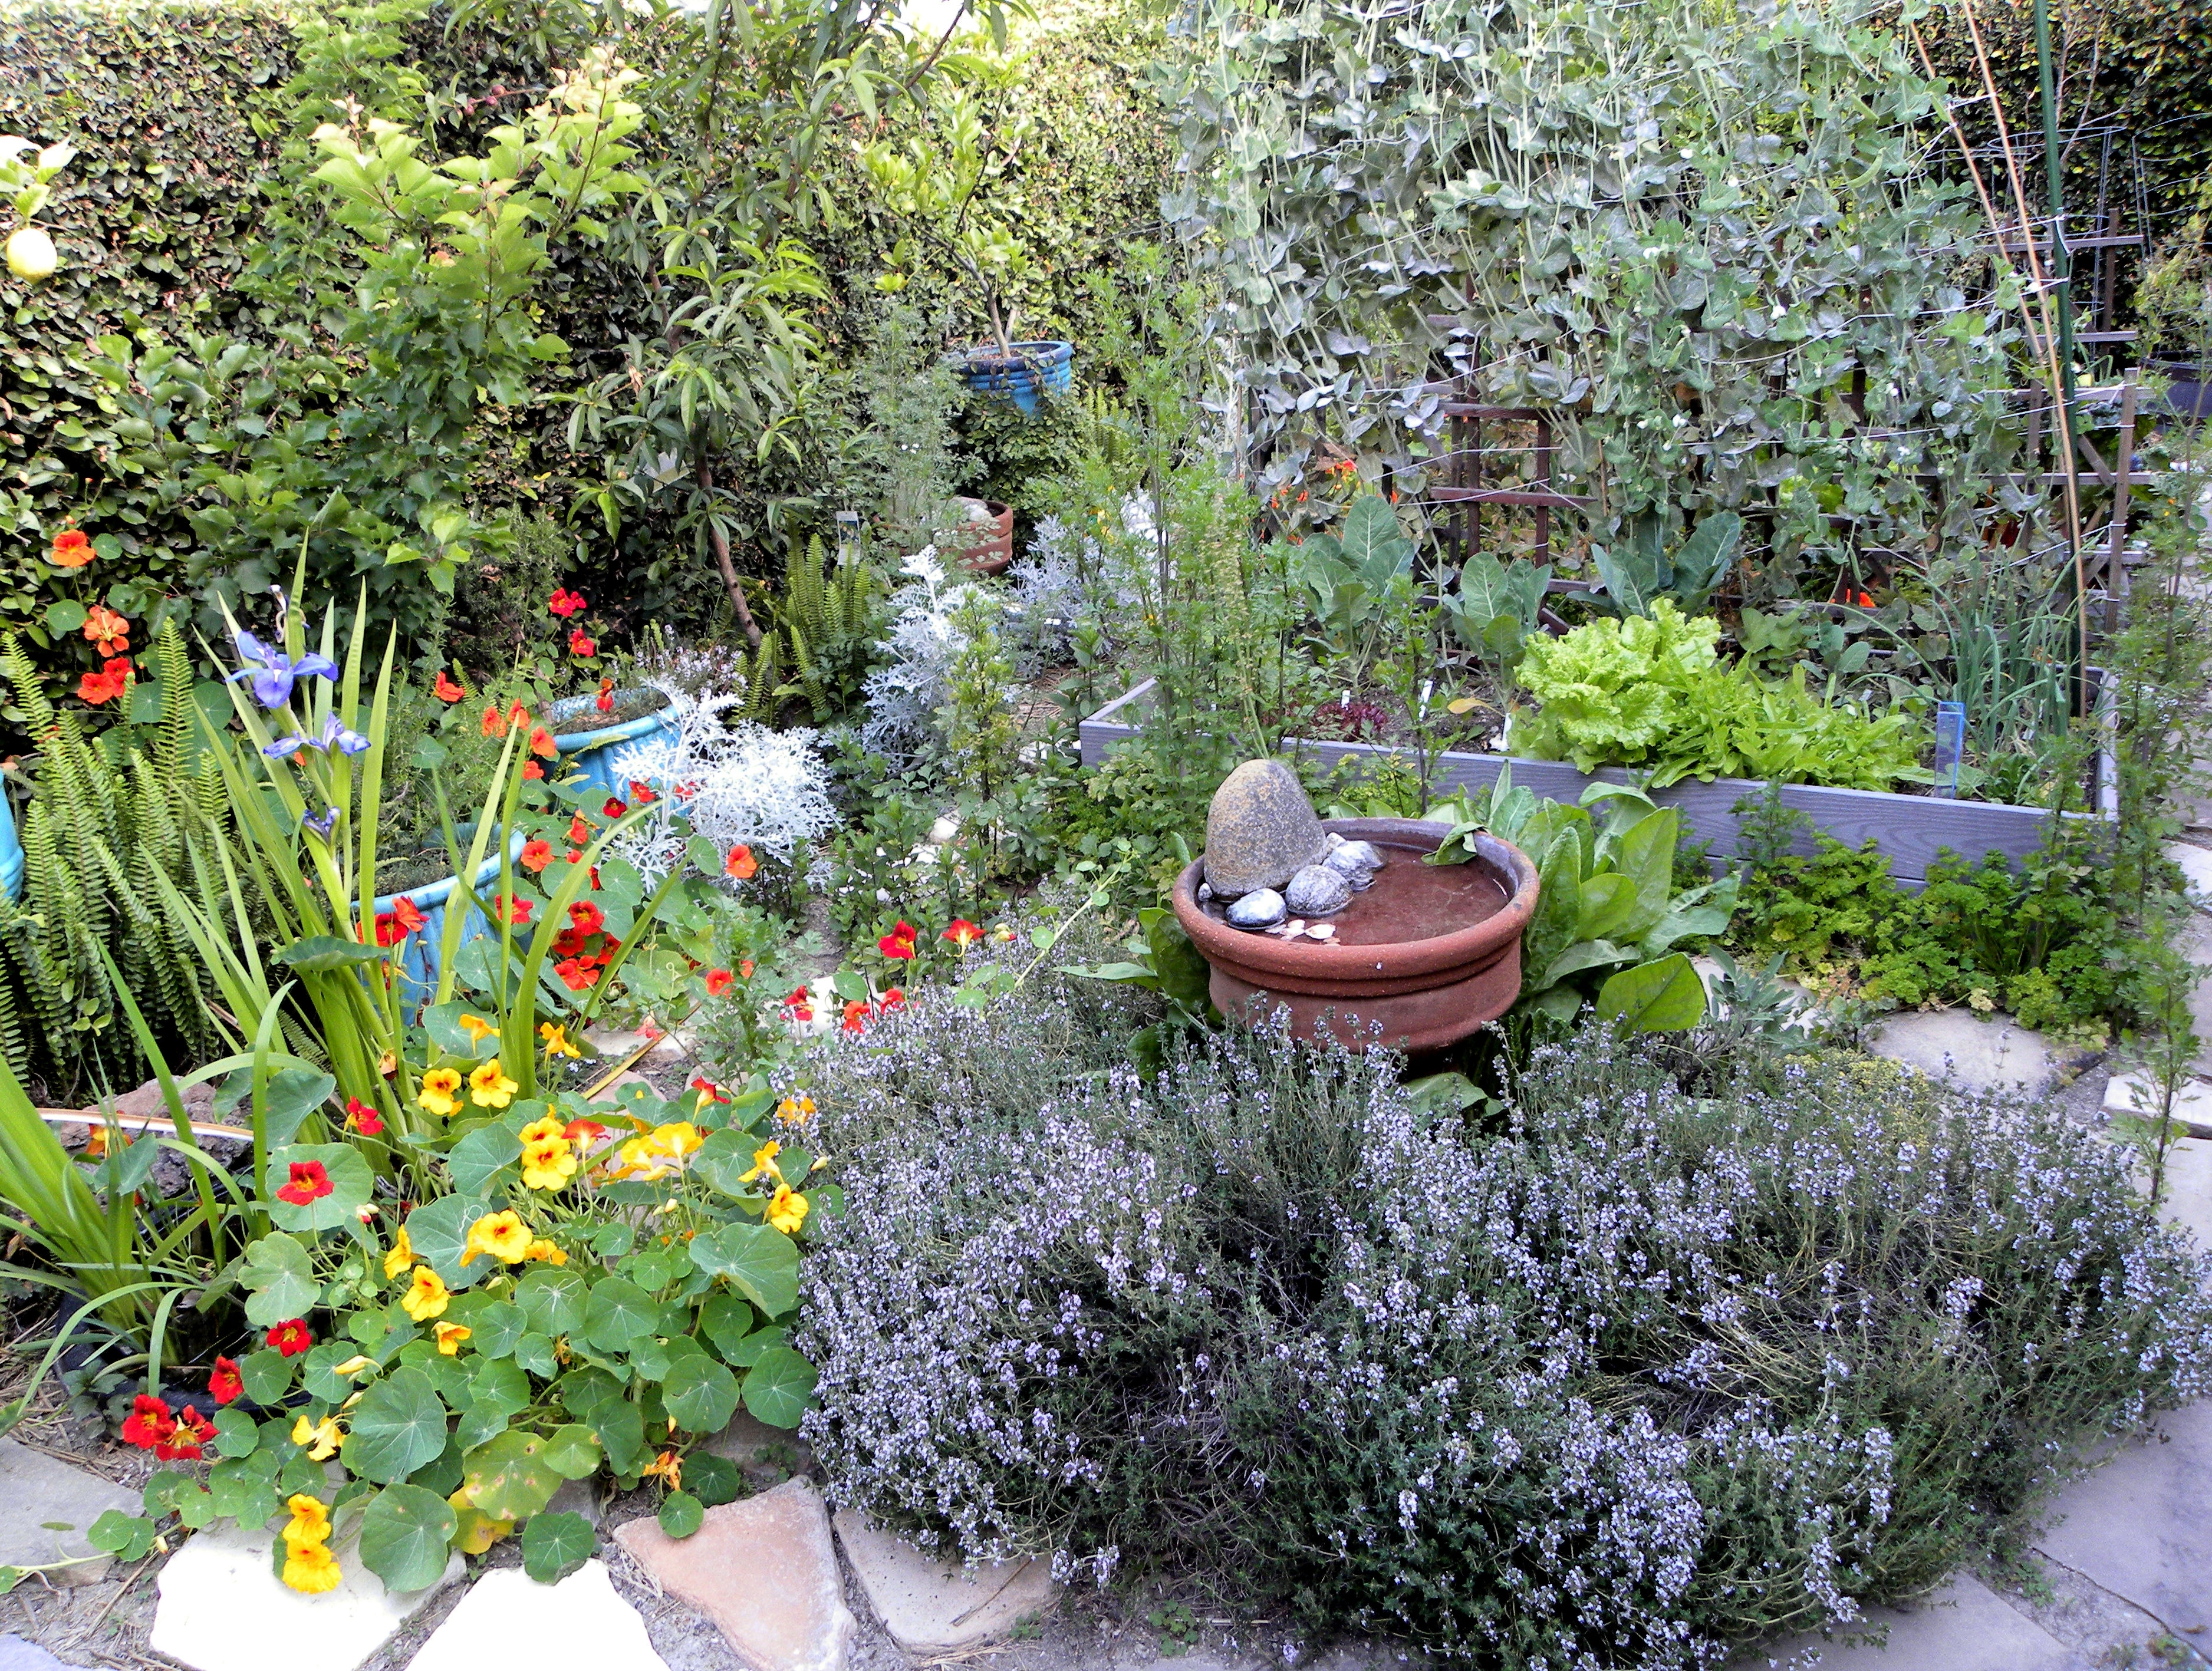 Backyard Herb Garden Ideas » Photo Gallery Backyard inside Backyard Herb Garden Ideas